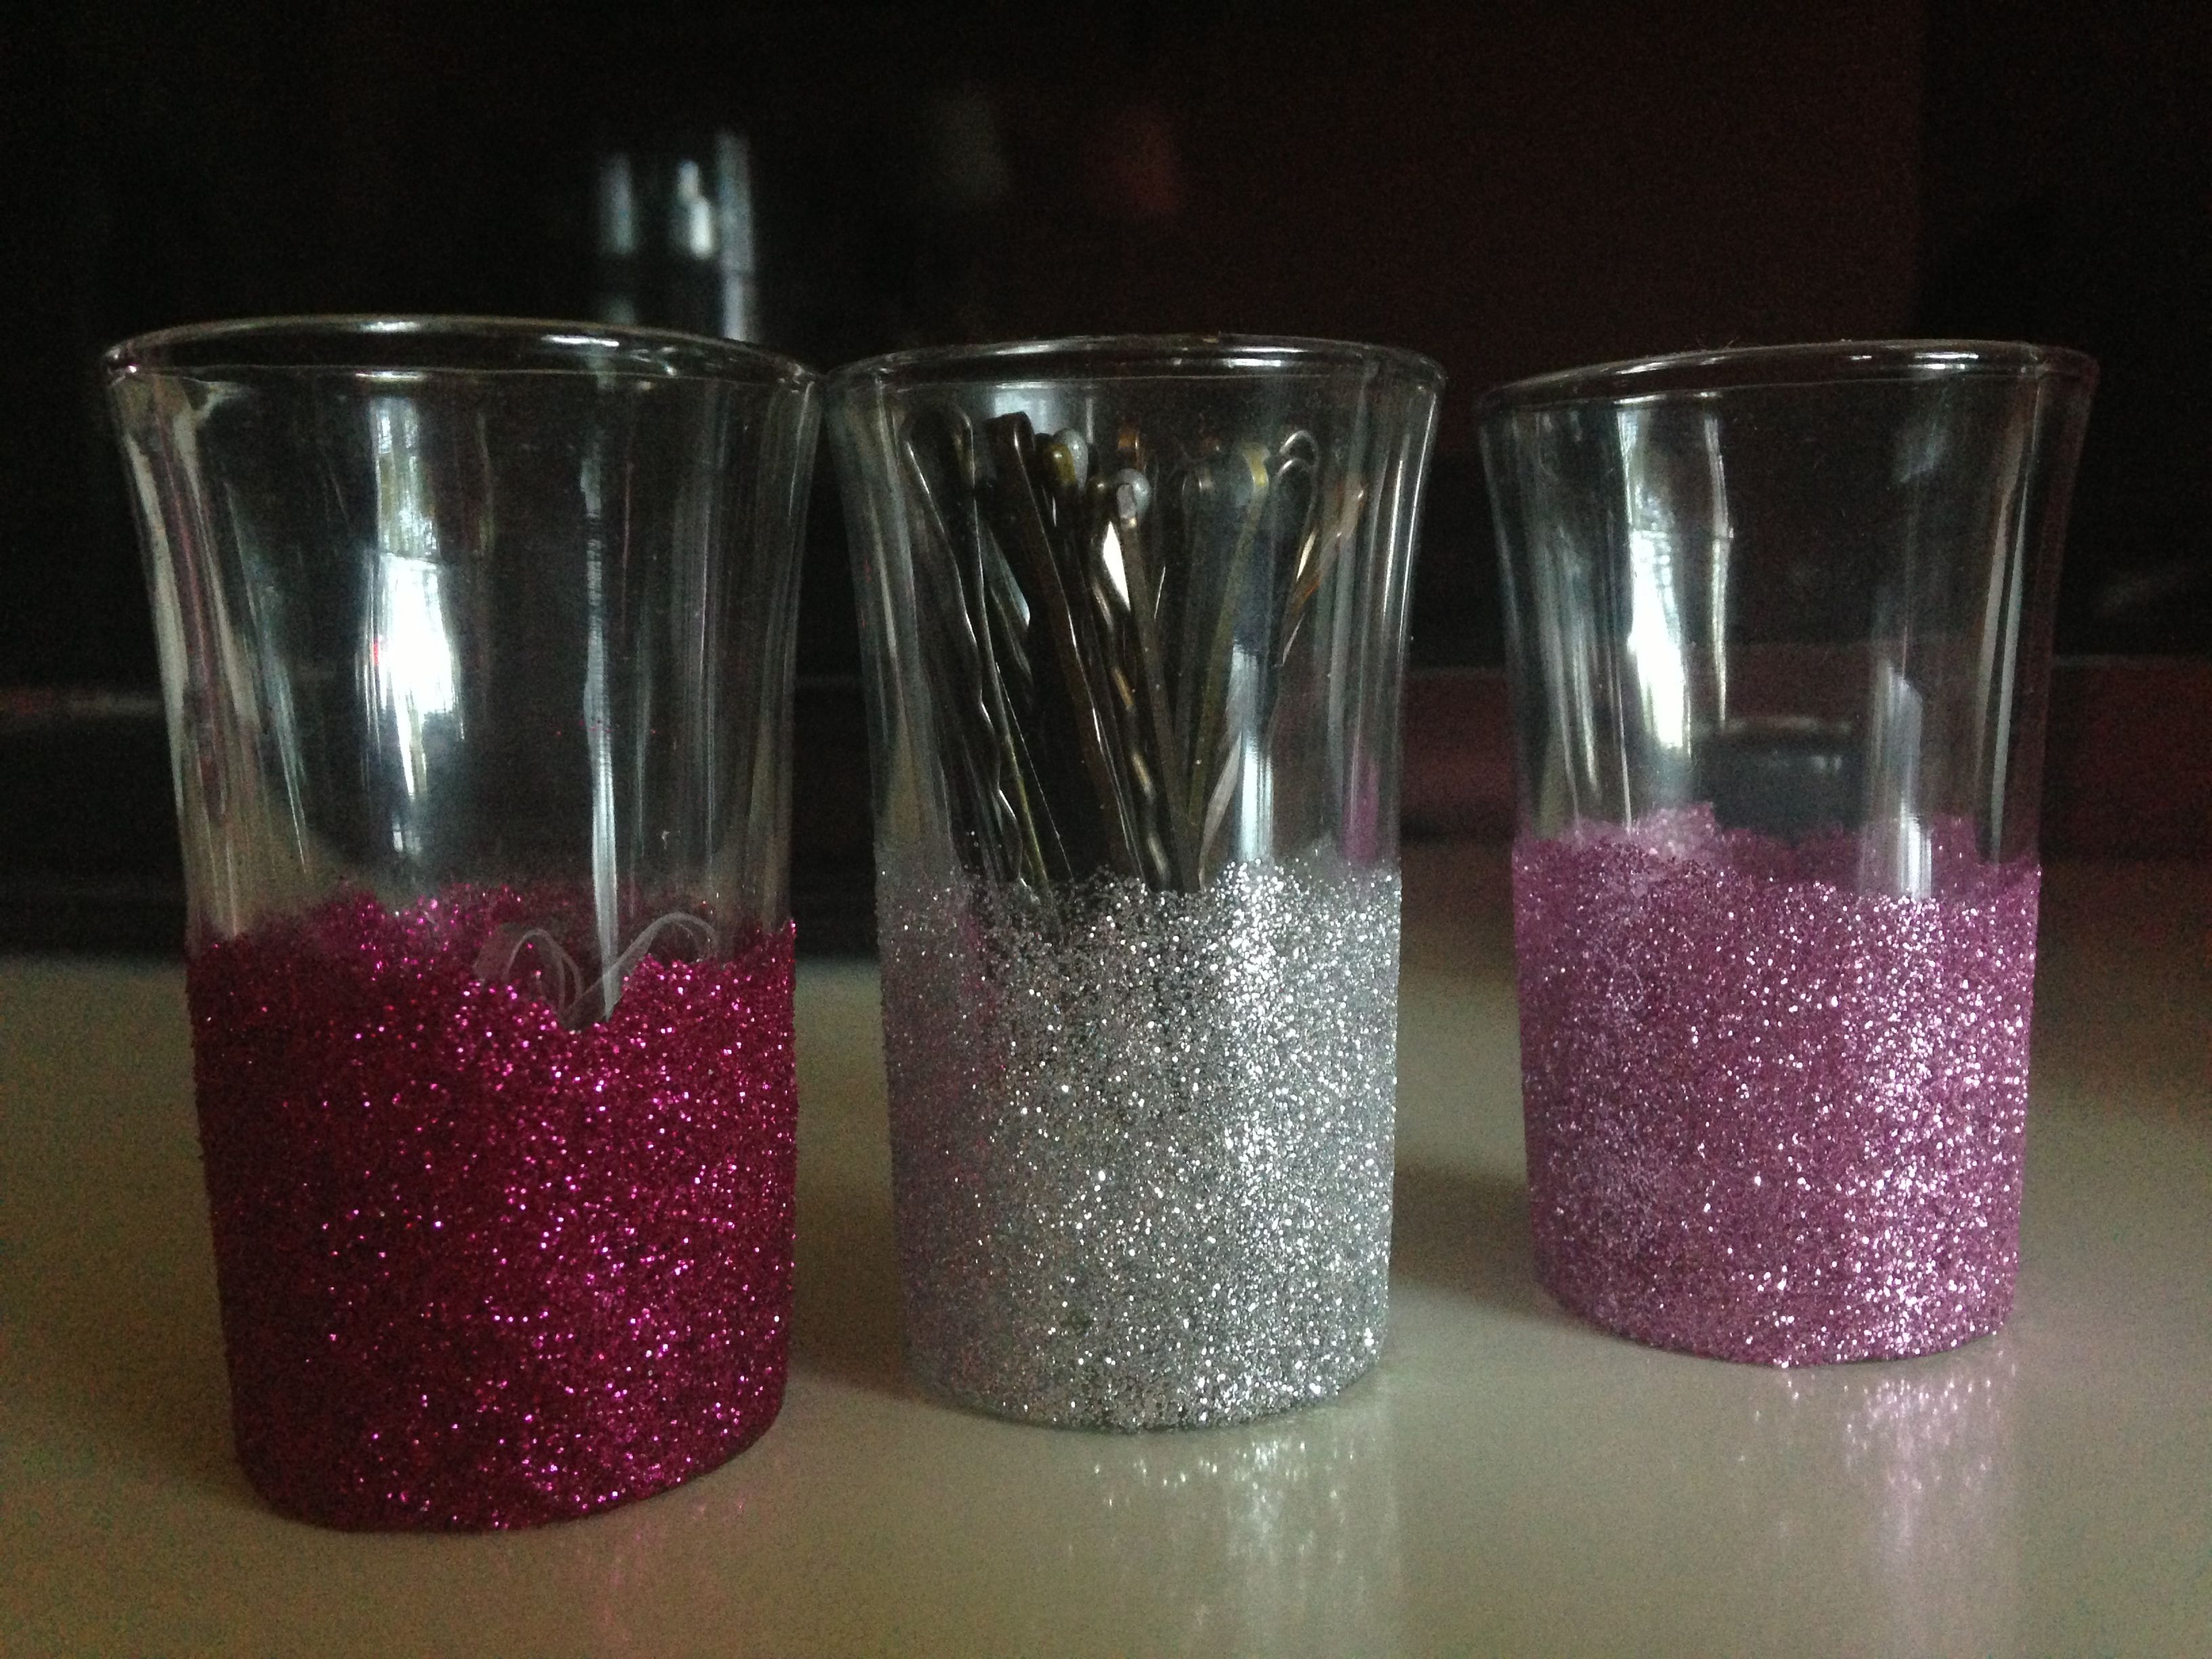 Pin By Carley Kitch On Diy Glitter Diy Diy Crafts Arts And Crafts